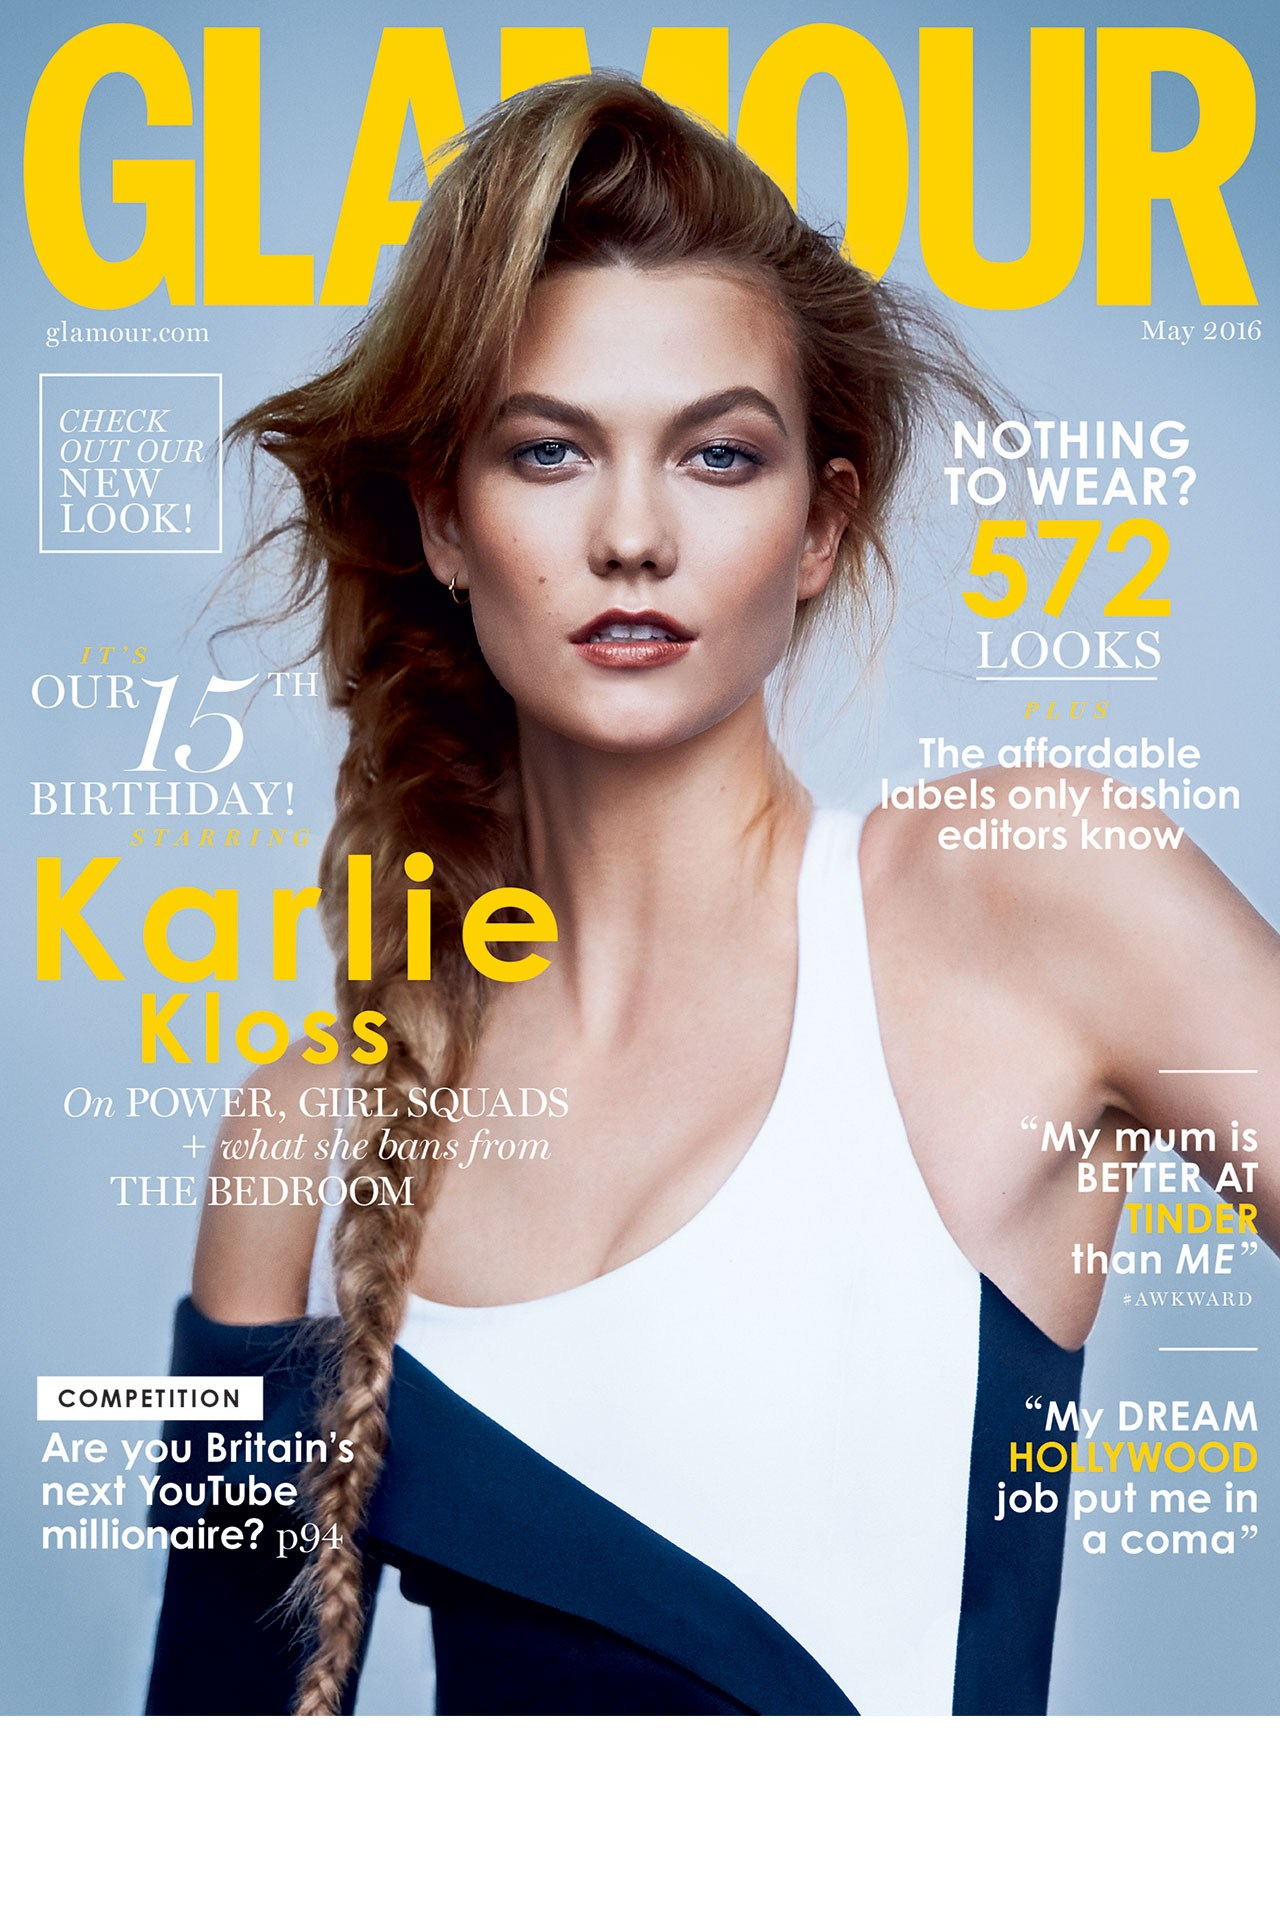 Karlie Kloss Covers Glamour Magazine May 2016 Fashionandstylepolice